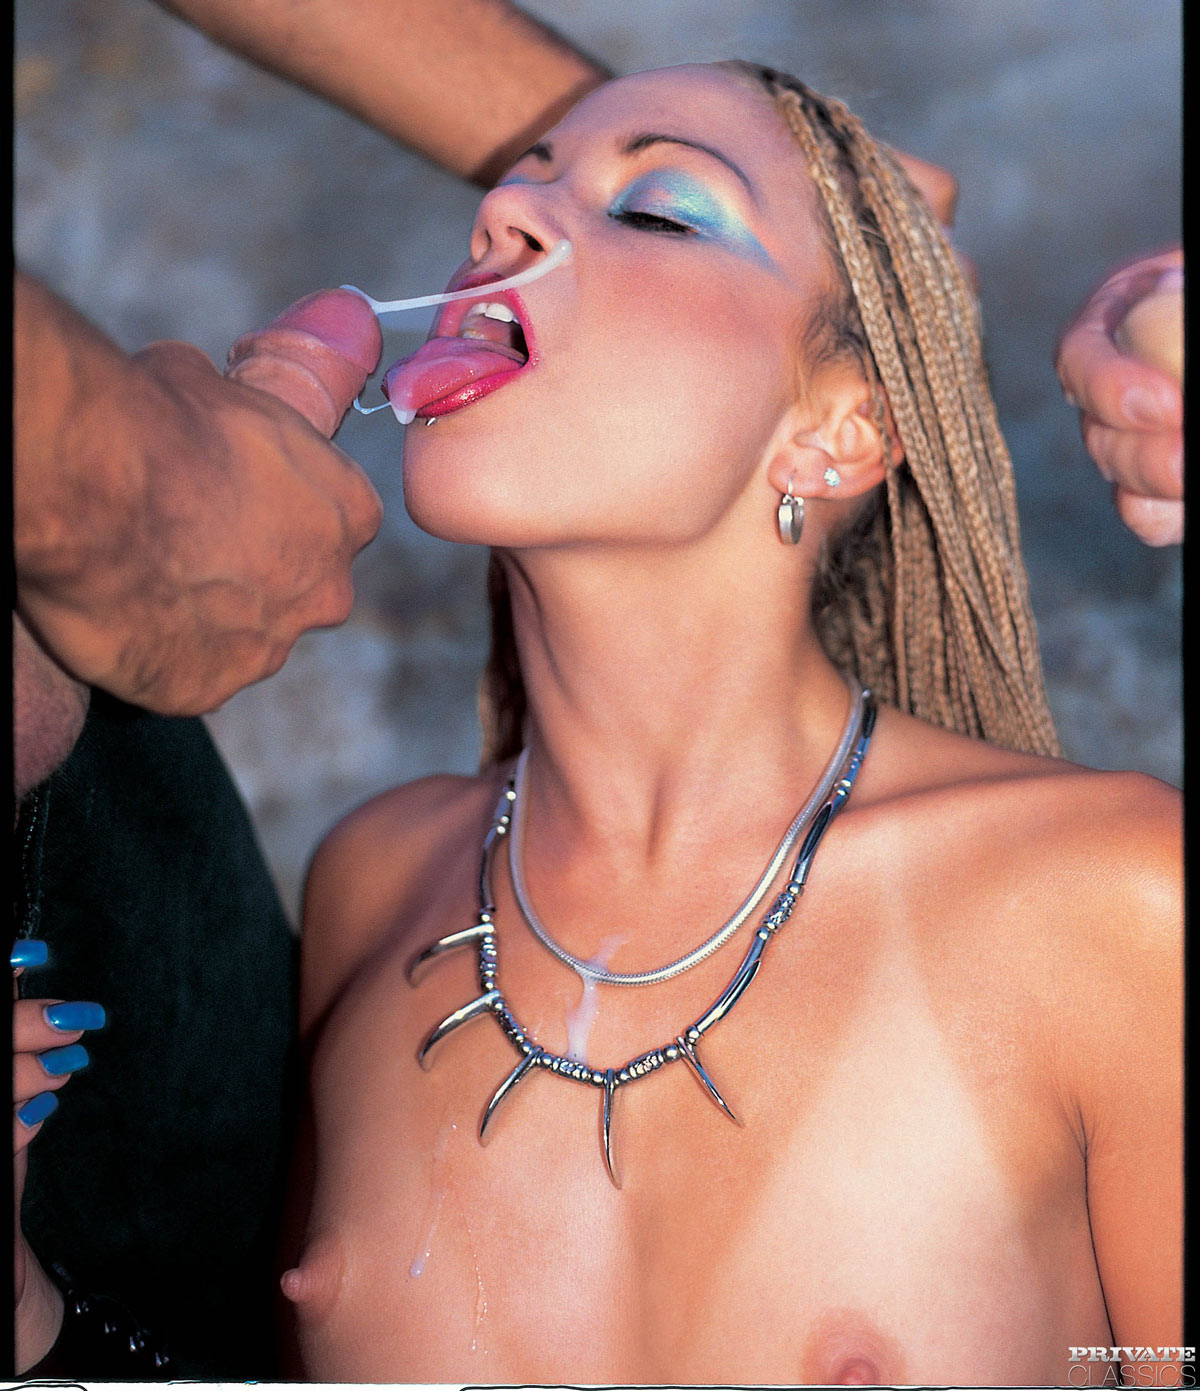 Naughty Nika and two guys nude in the outdoor . From SexMagazine 46, first published 2003. Private Classics Archive.